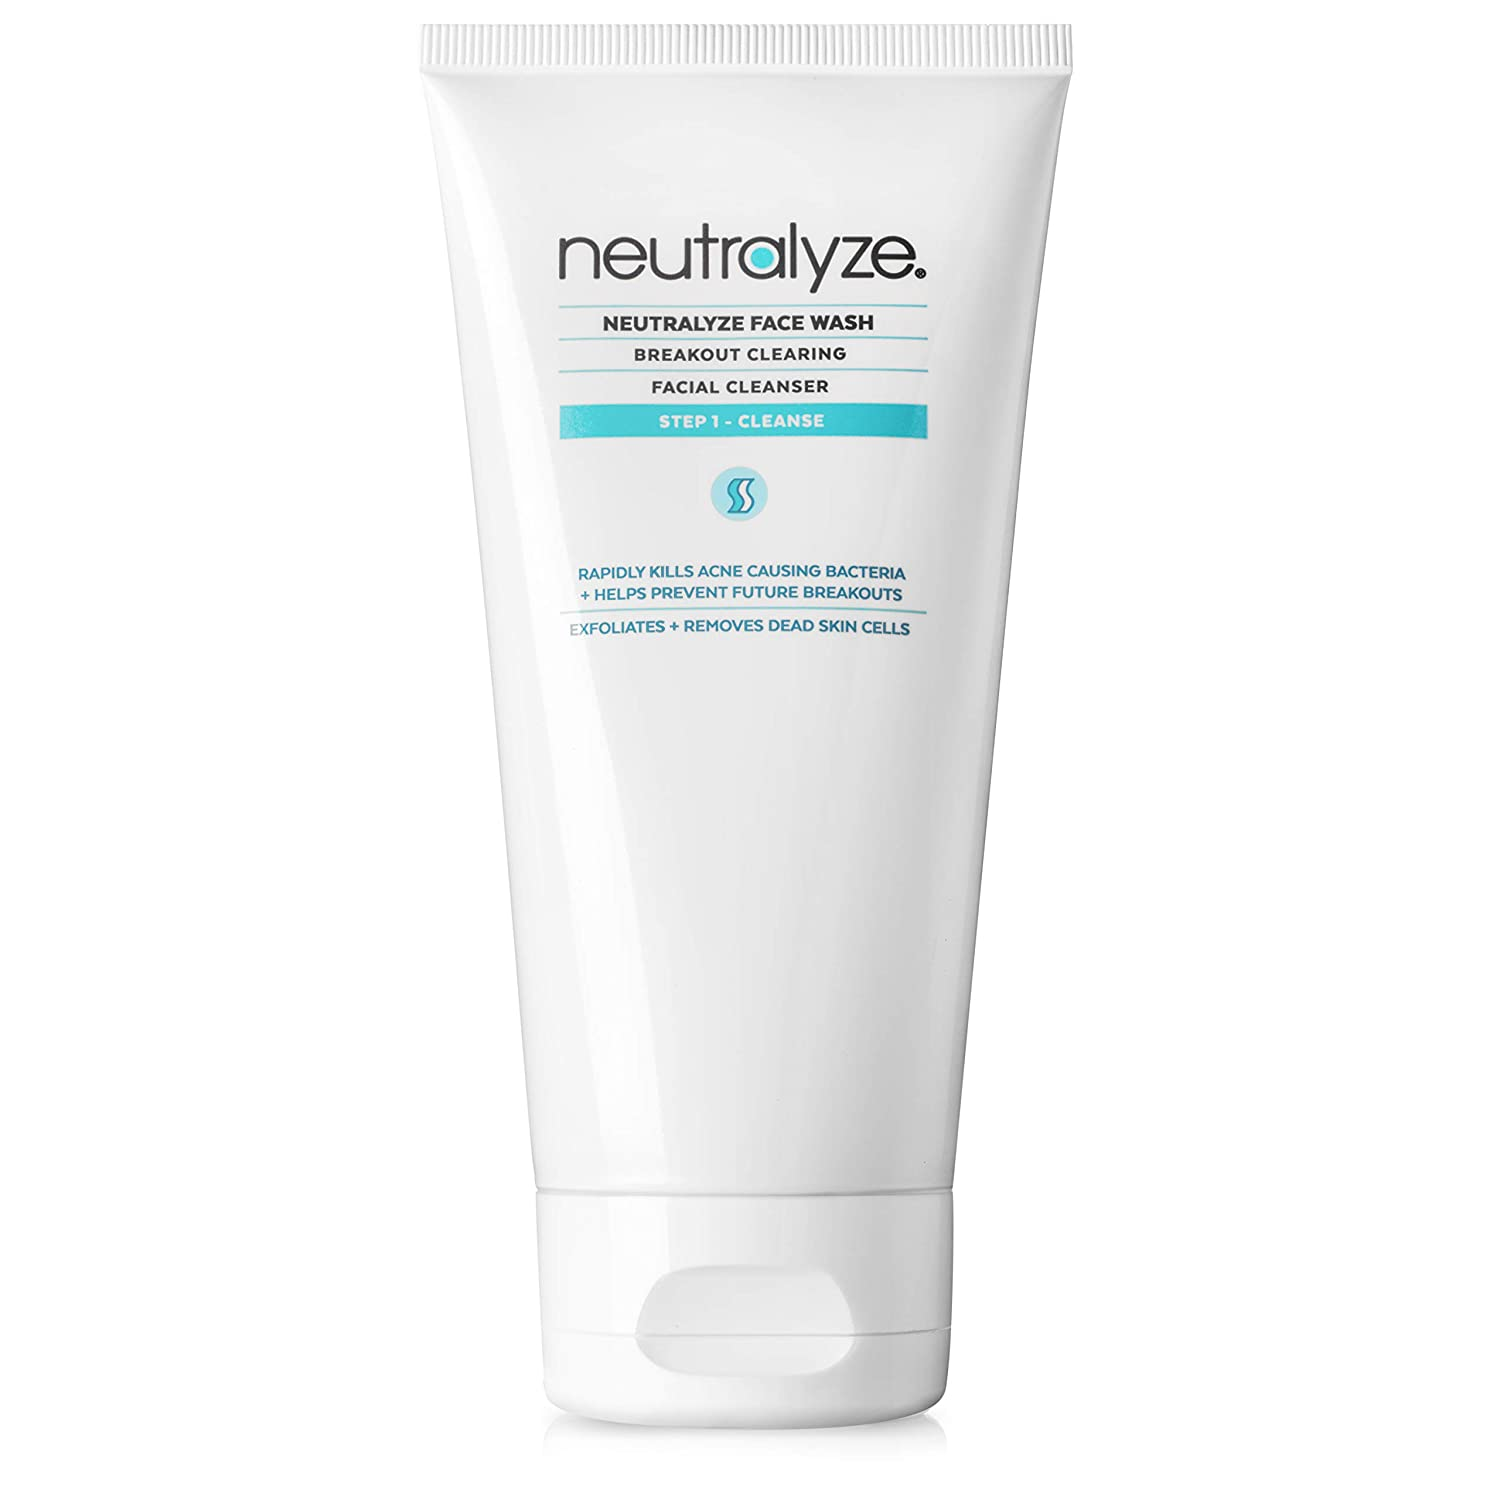 Neutralyze Moderate To Severe Acne Face Wash 2.0 - Maximum Strength Face Wash For Acne Prone Skin with 2% Salicylic Acid + 1% Mandelic Acid + Nitrogen Boost Skincare Technology